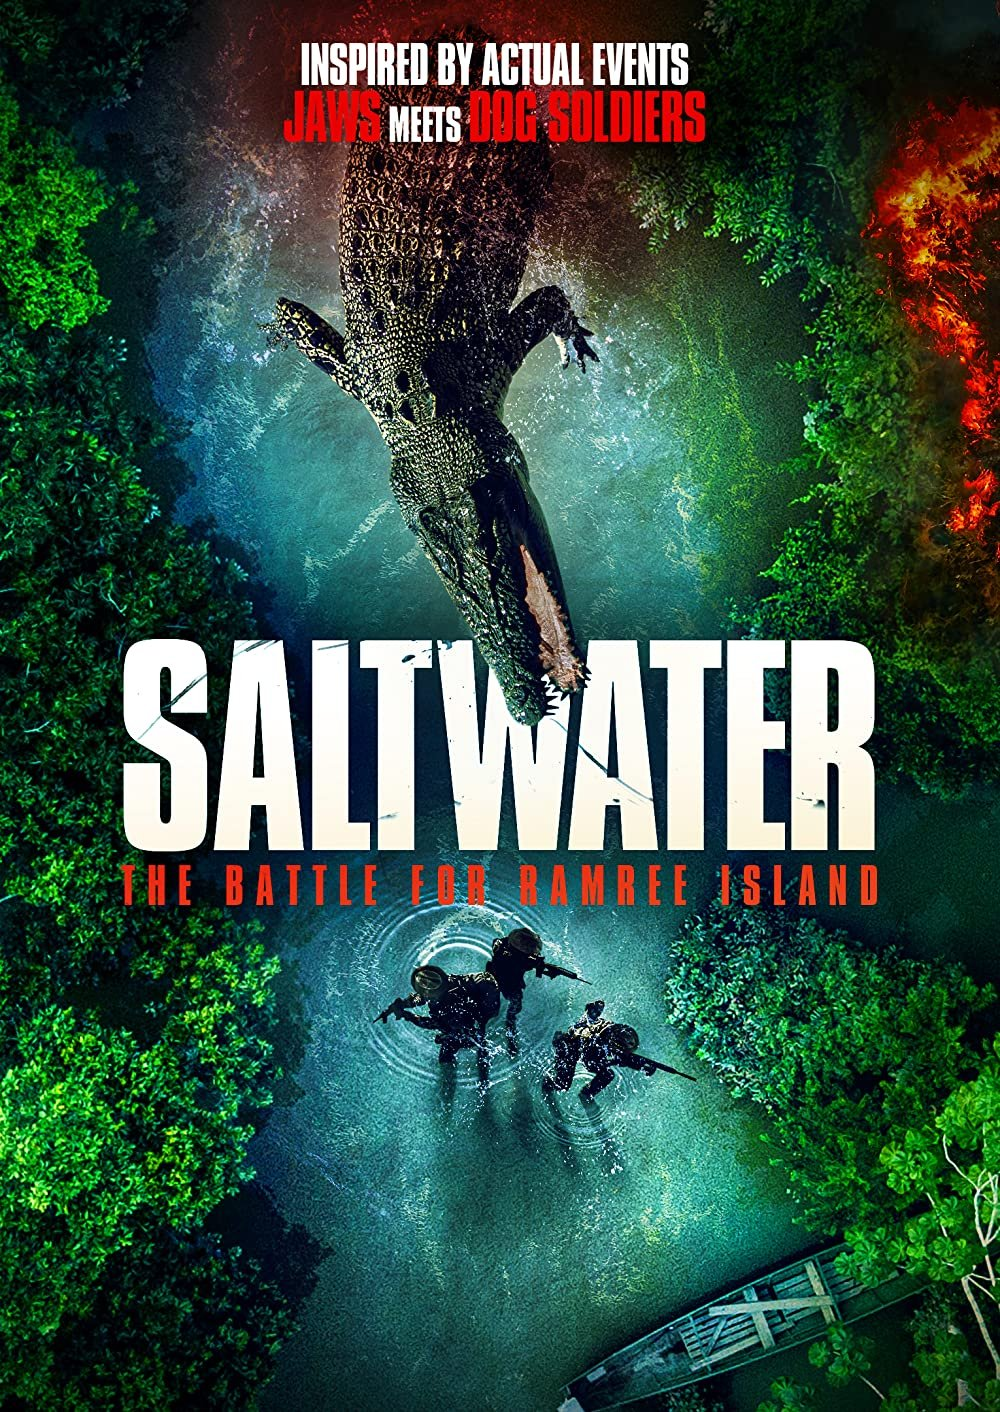 Saltwater: The Battle for Ramree Island poster image